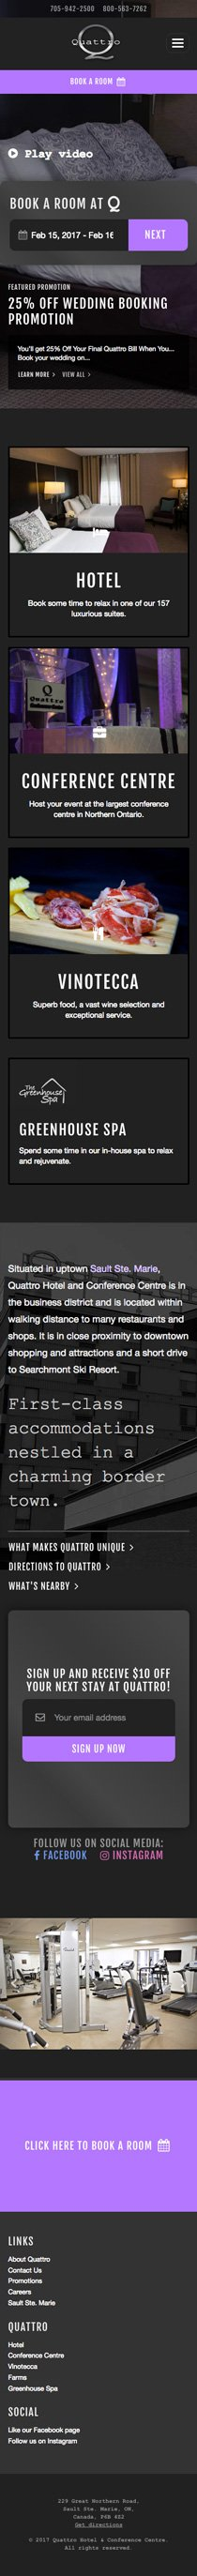 Quattro mobile-responsive website screenshot